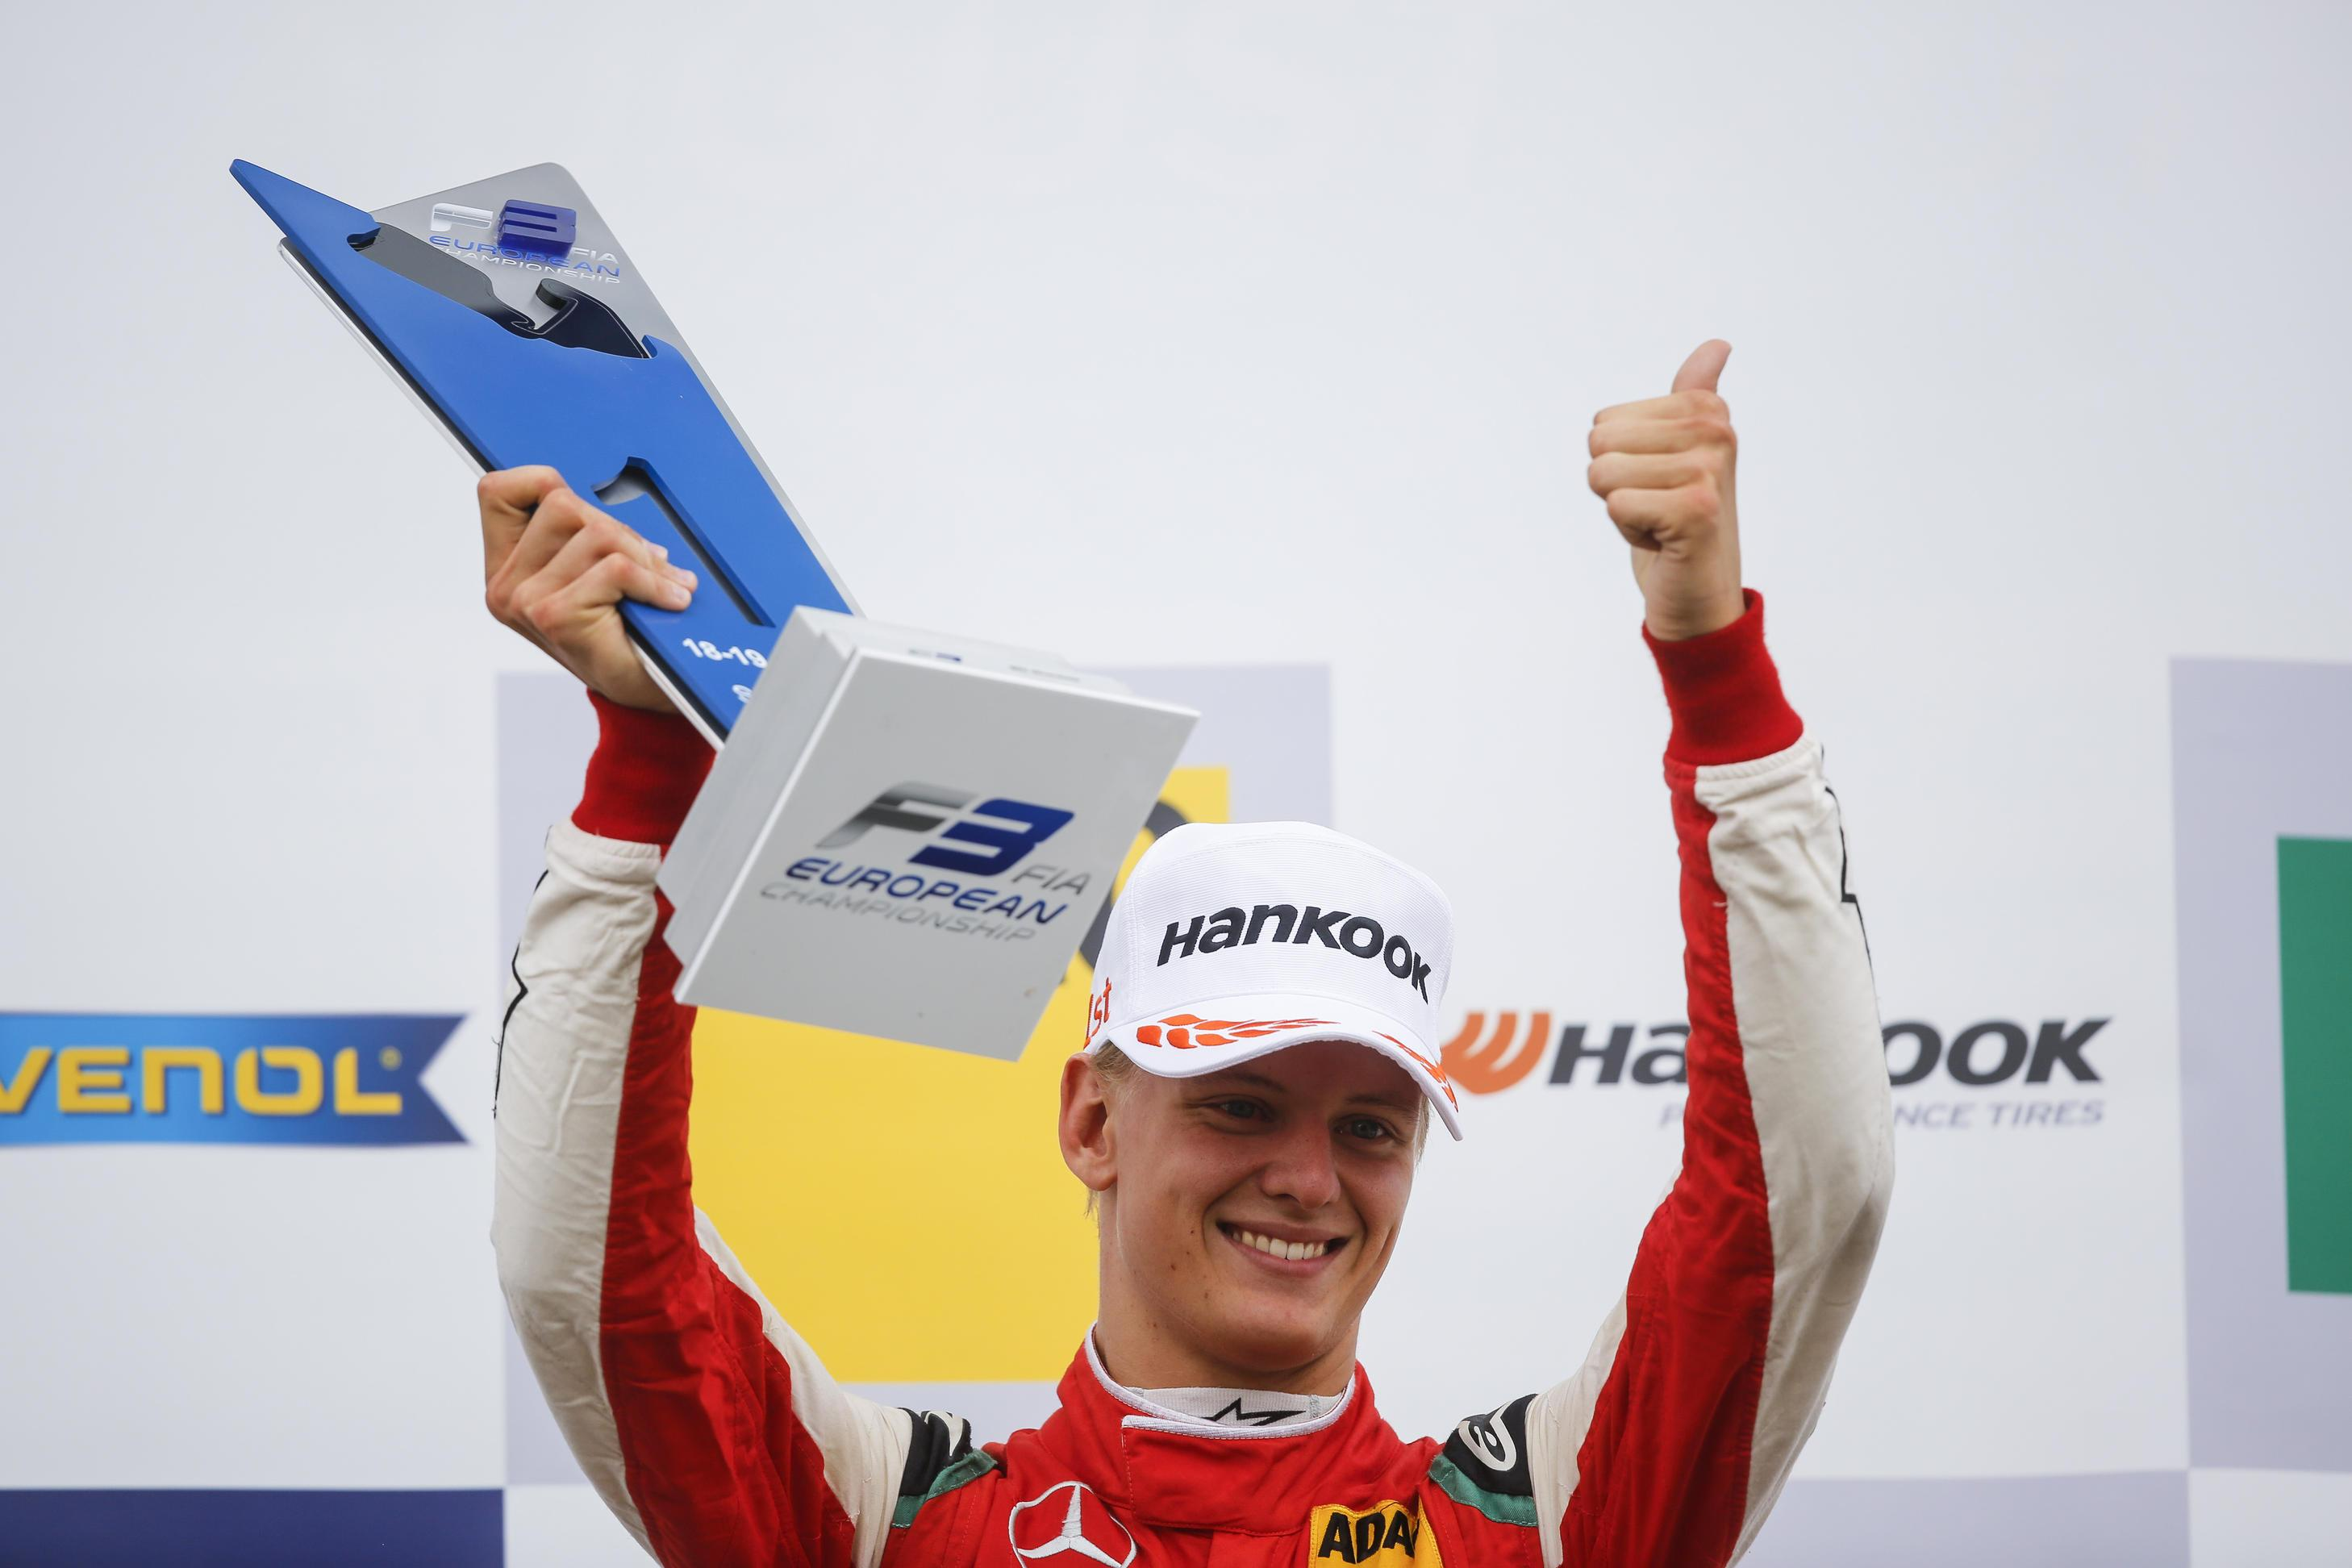 Mick Schumacher is aiming to progress to Formula 2, before reaching F1